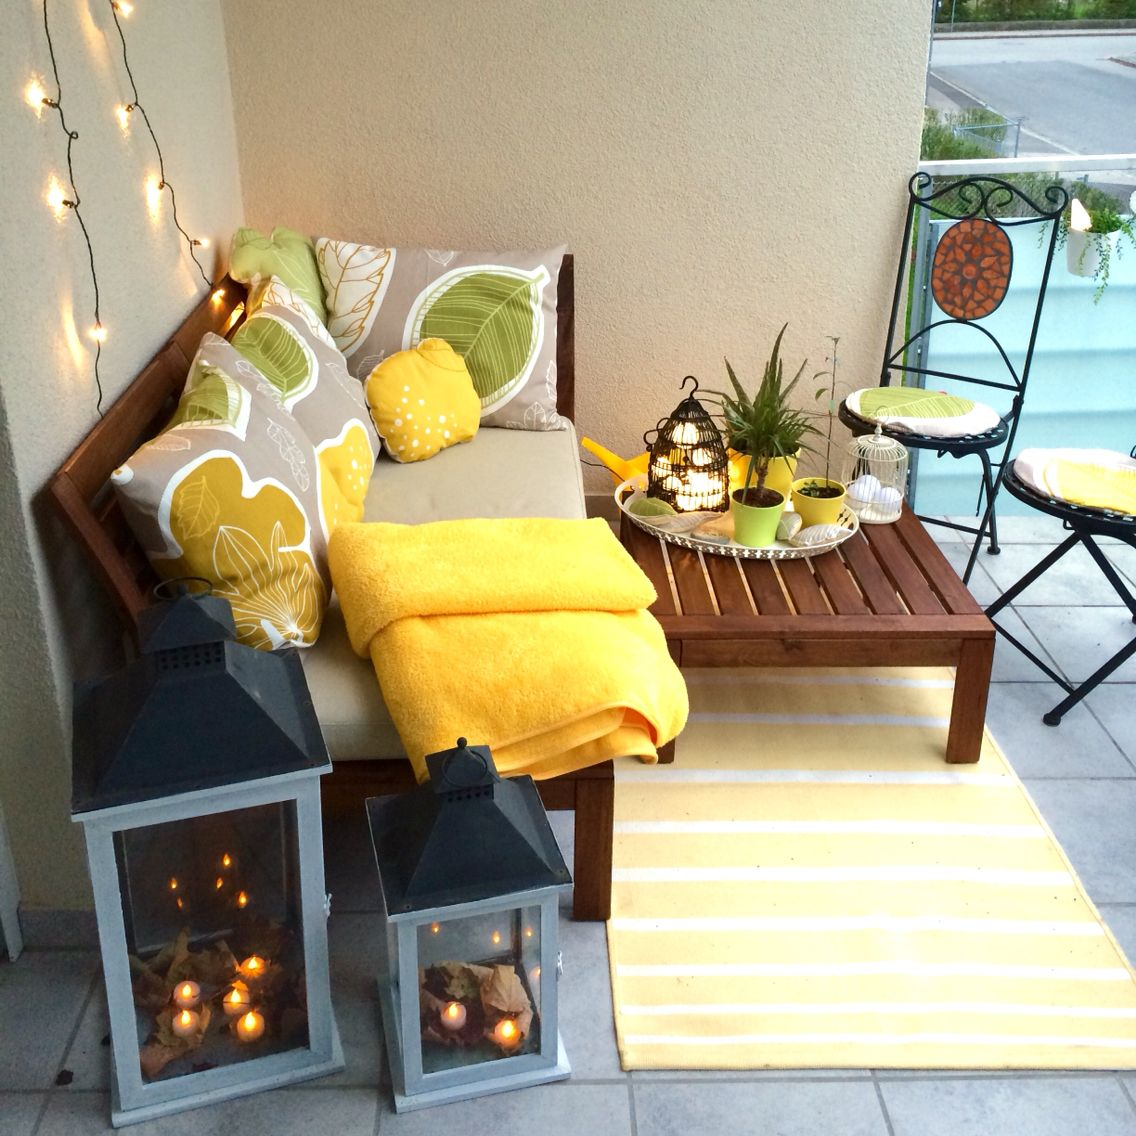 Lighting for small balconies - Small Balcony Ideas Furniture Gurine Fabric On Cushions Bird Cage With Skruv